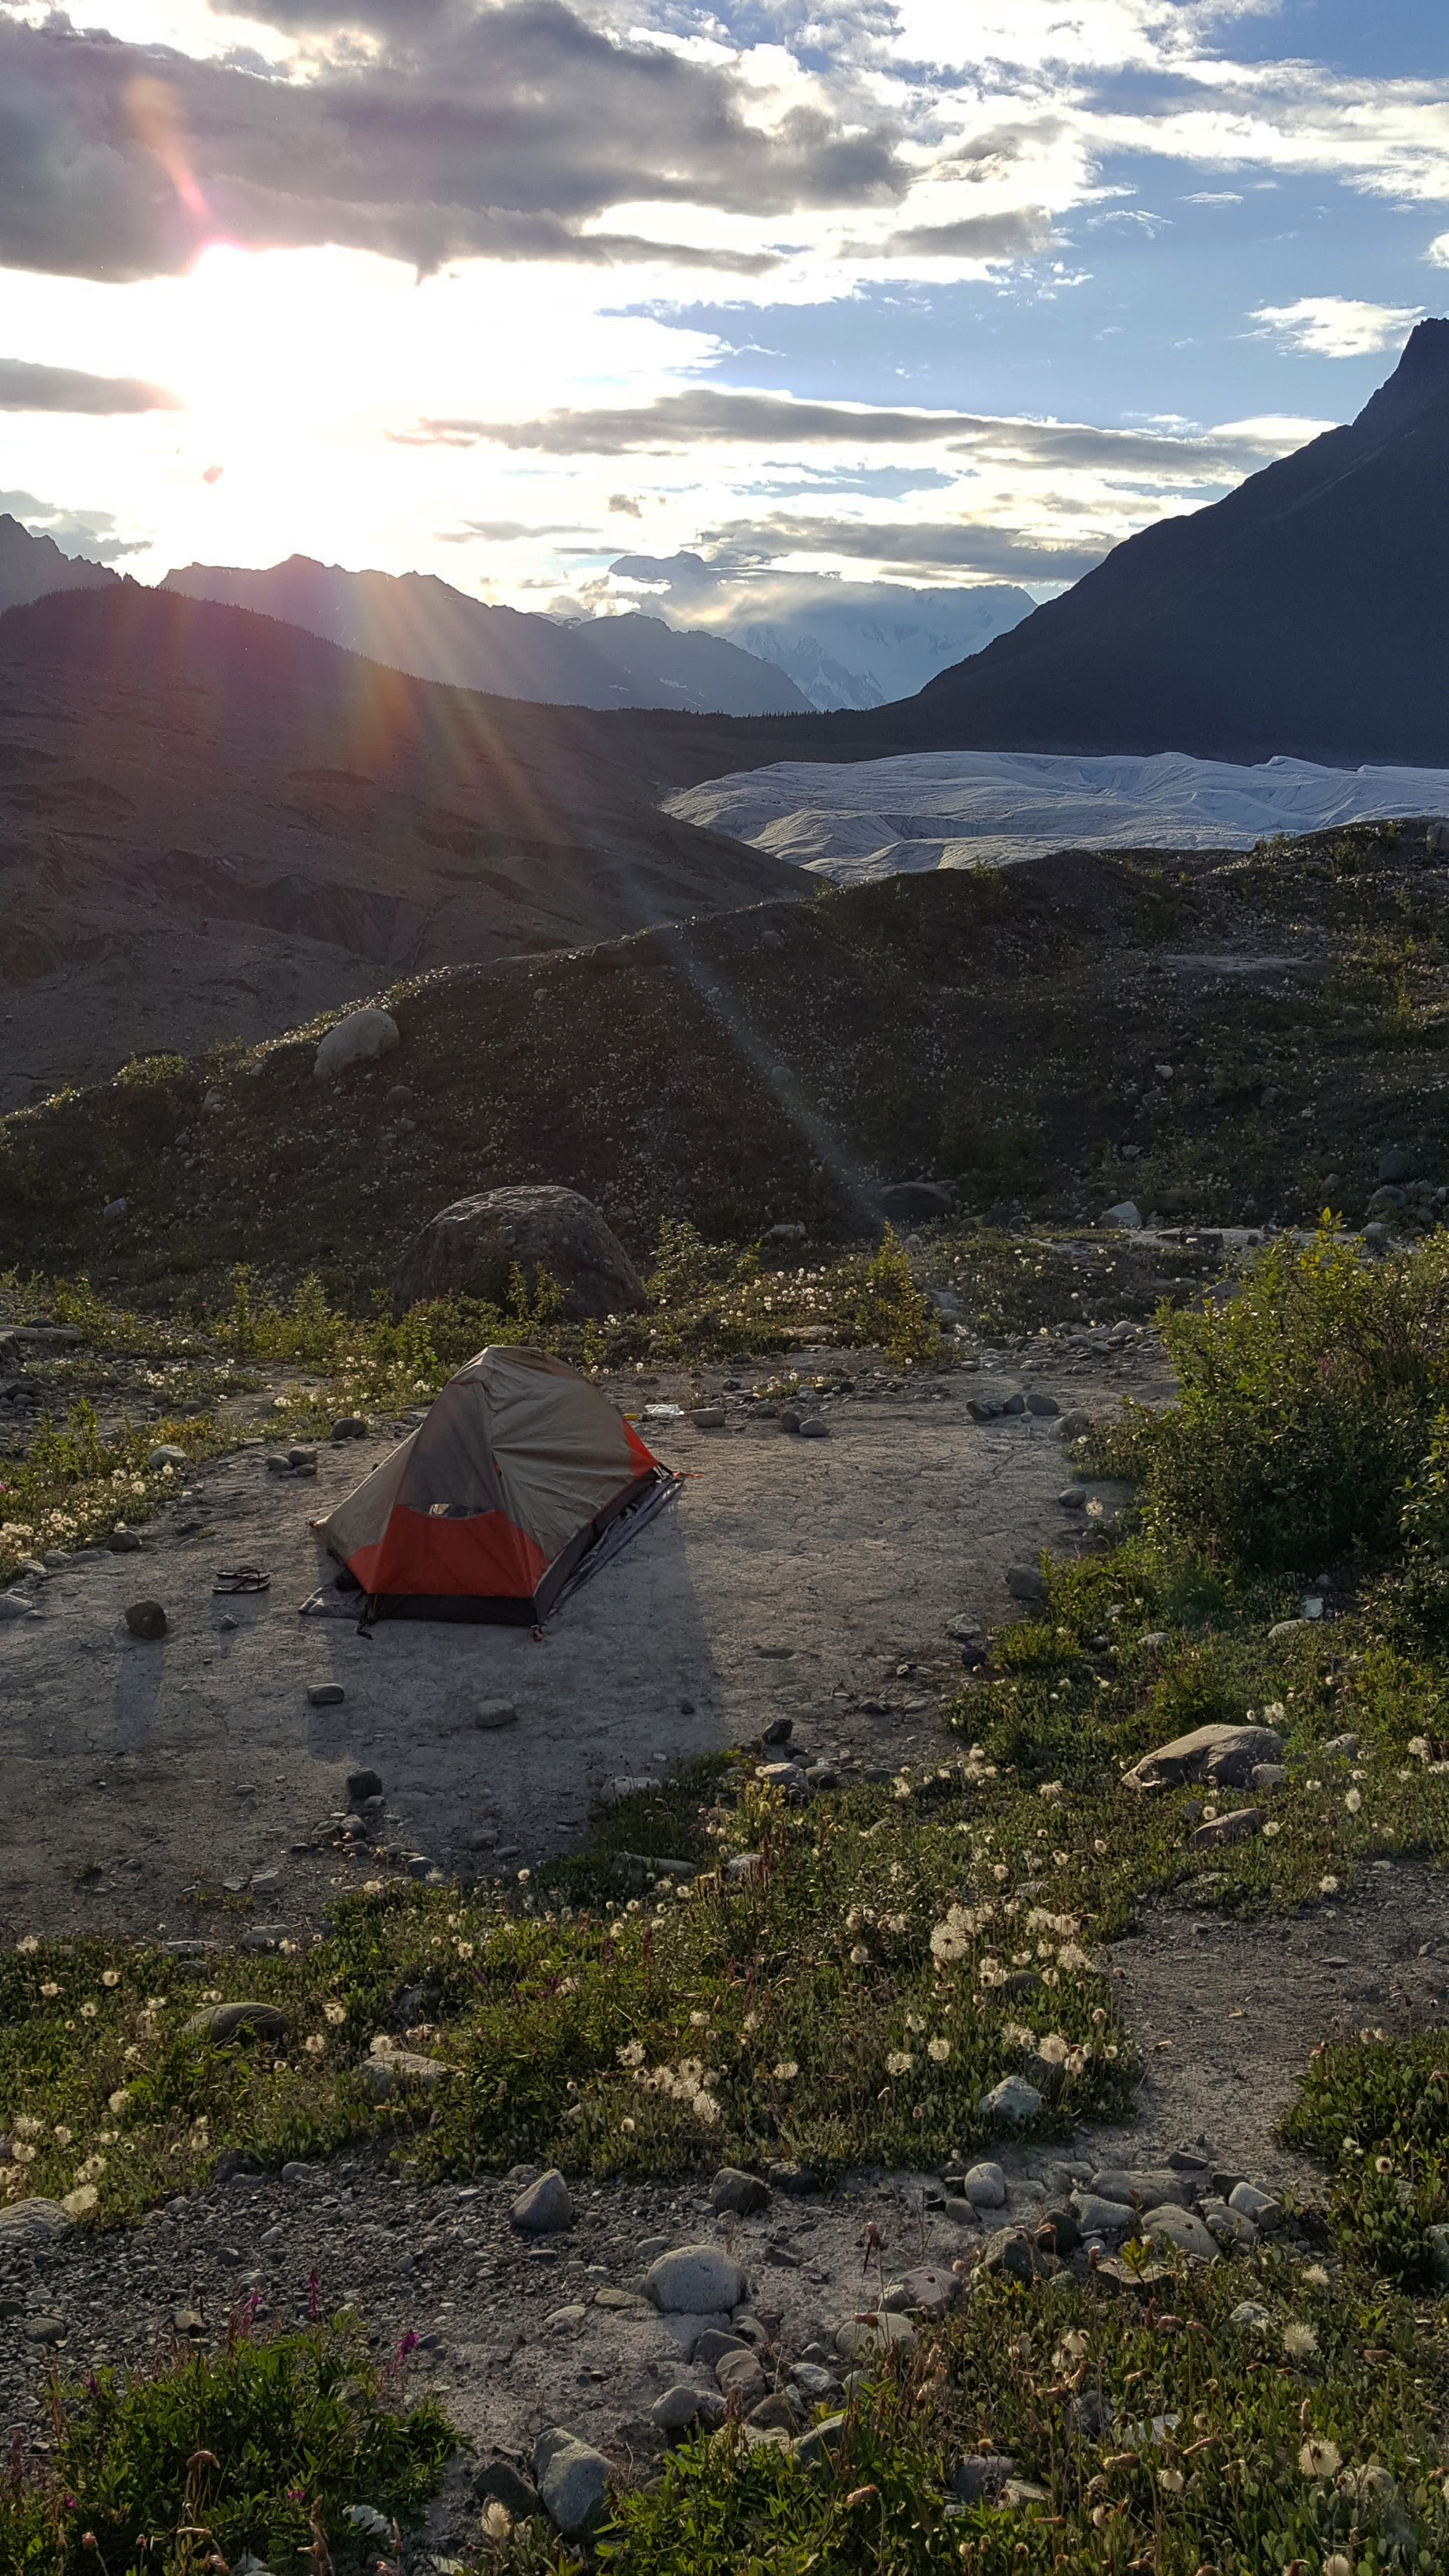 My tent overlooking the Root Glacier and St. Elias Mountain Range. The sun set at about midnight and rose at 4AM, merging dusk and dawn and painting the night sky a light pink.